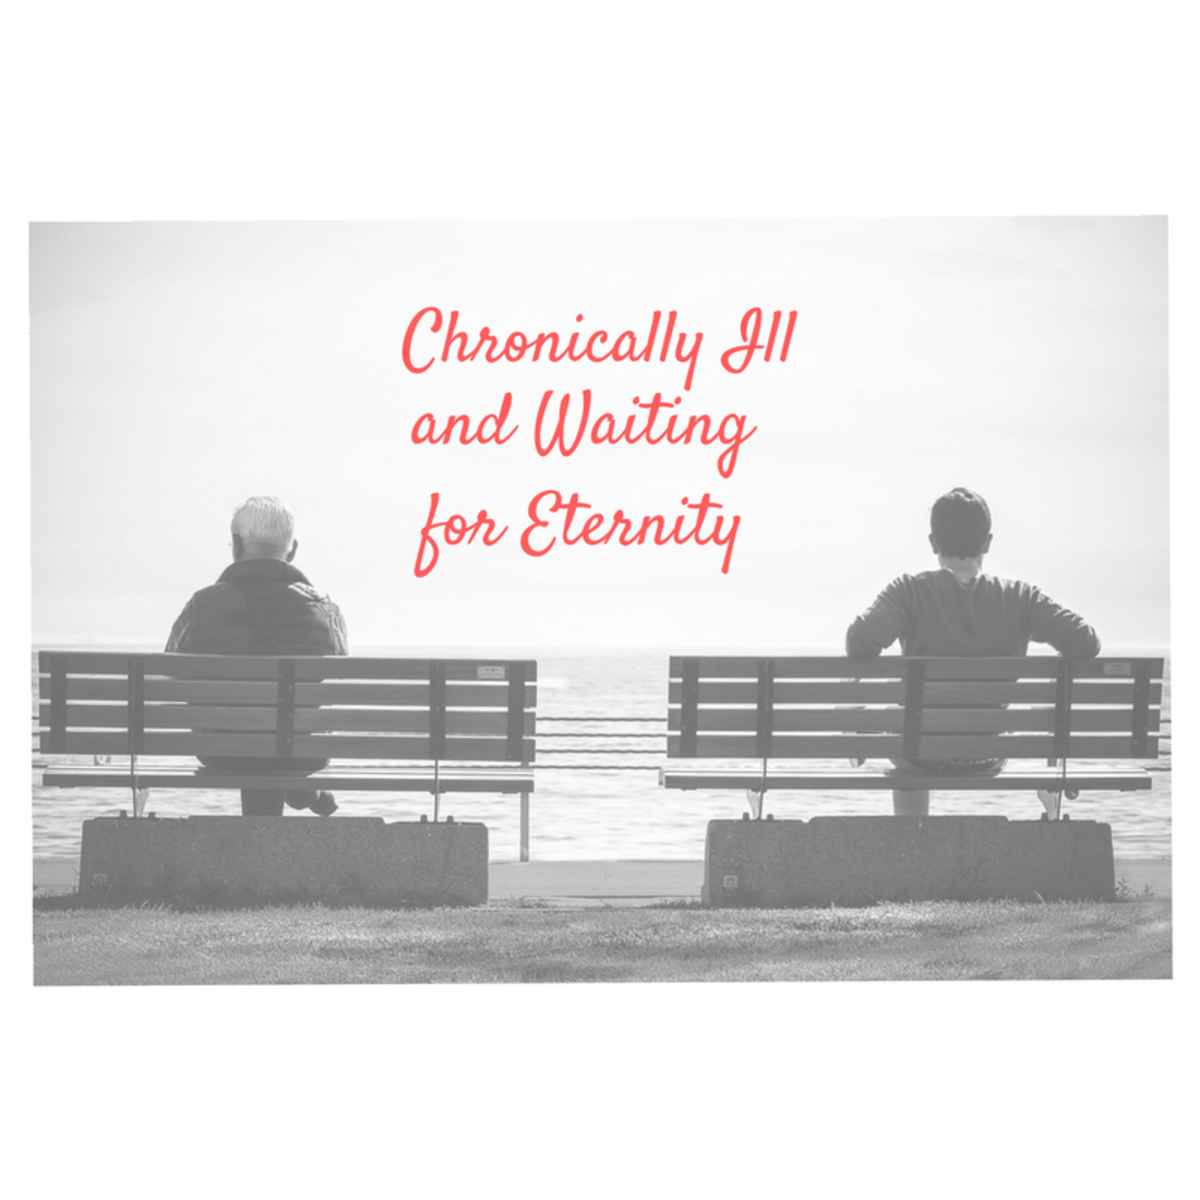 Chronically Ill and Waiting for Eternity